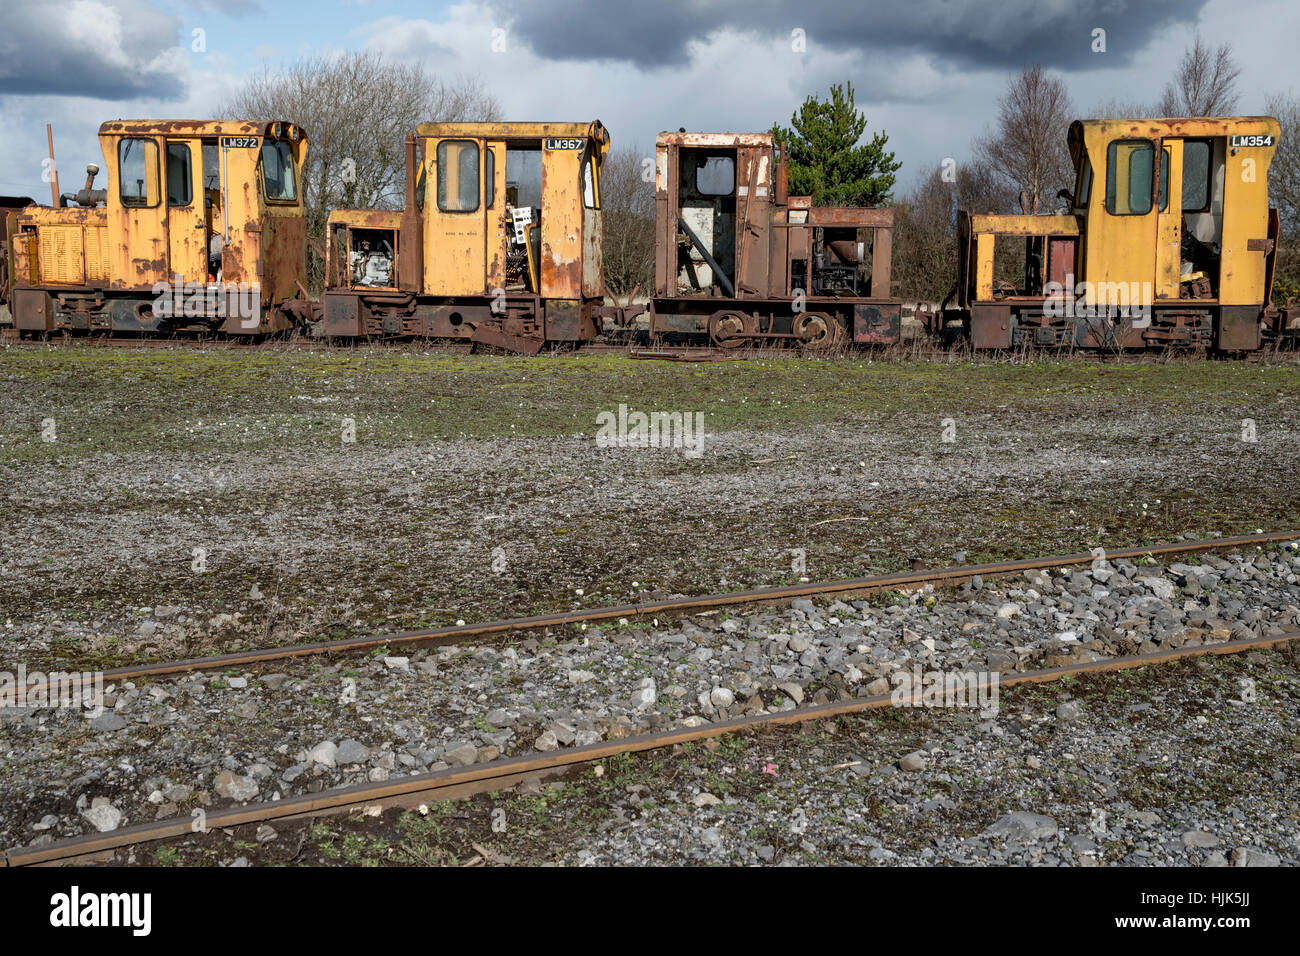 Exhibition of old rusted unused machinery (locomotive and freight ...